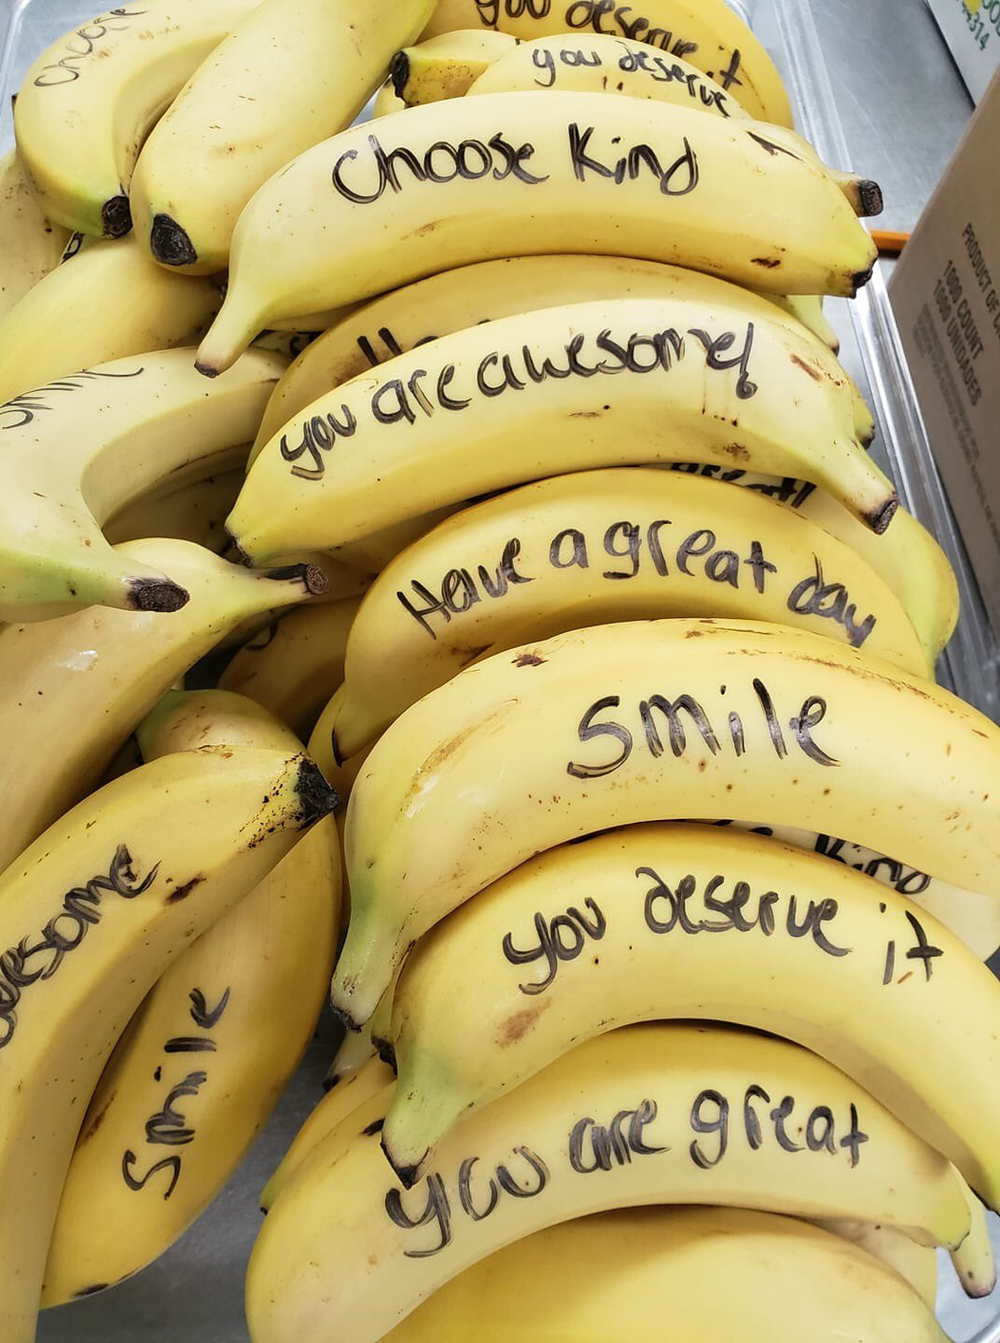 Bananas with positive messages written on them as a way to promote healthy eating.